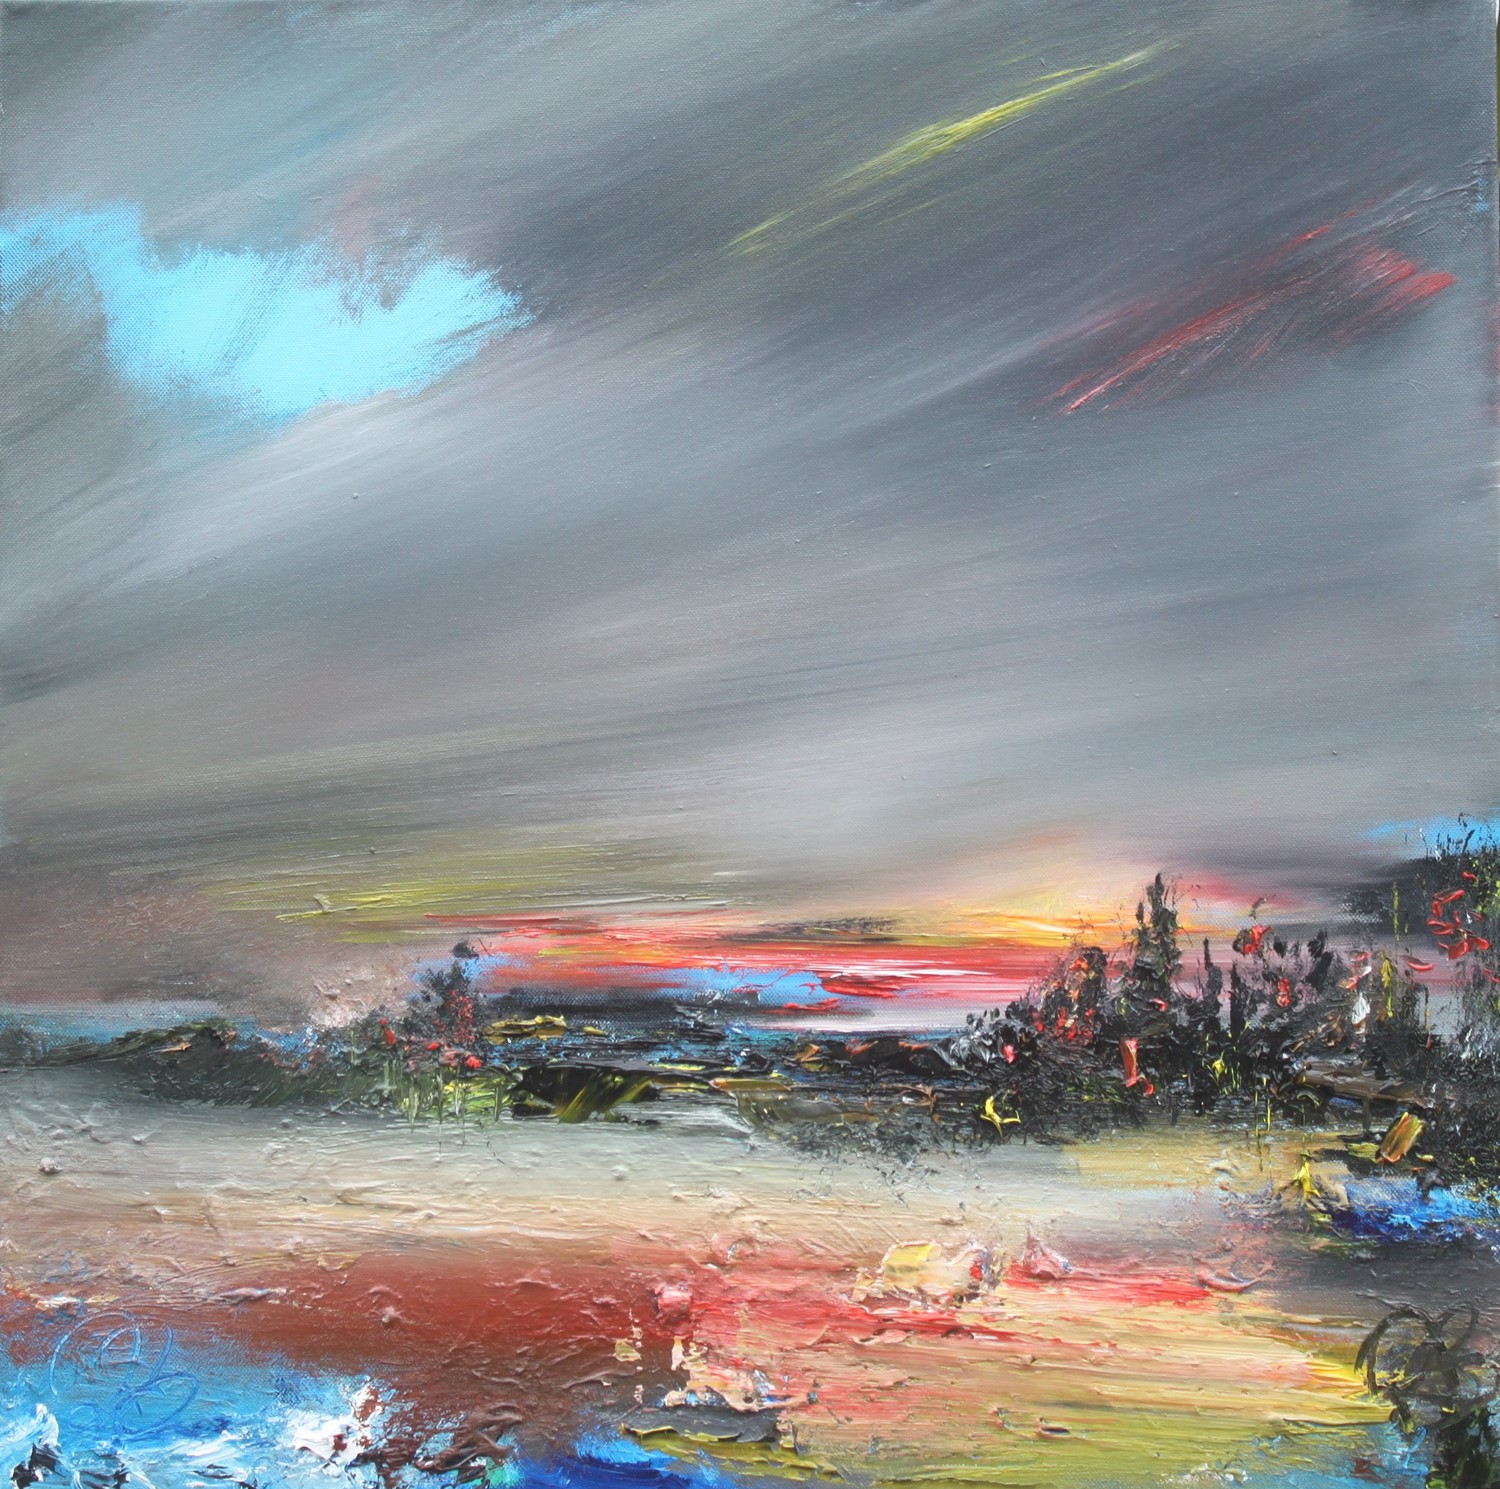 'Night Glow' by artist Rosanne Barr